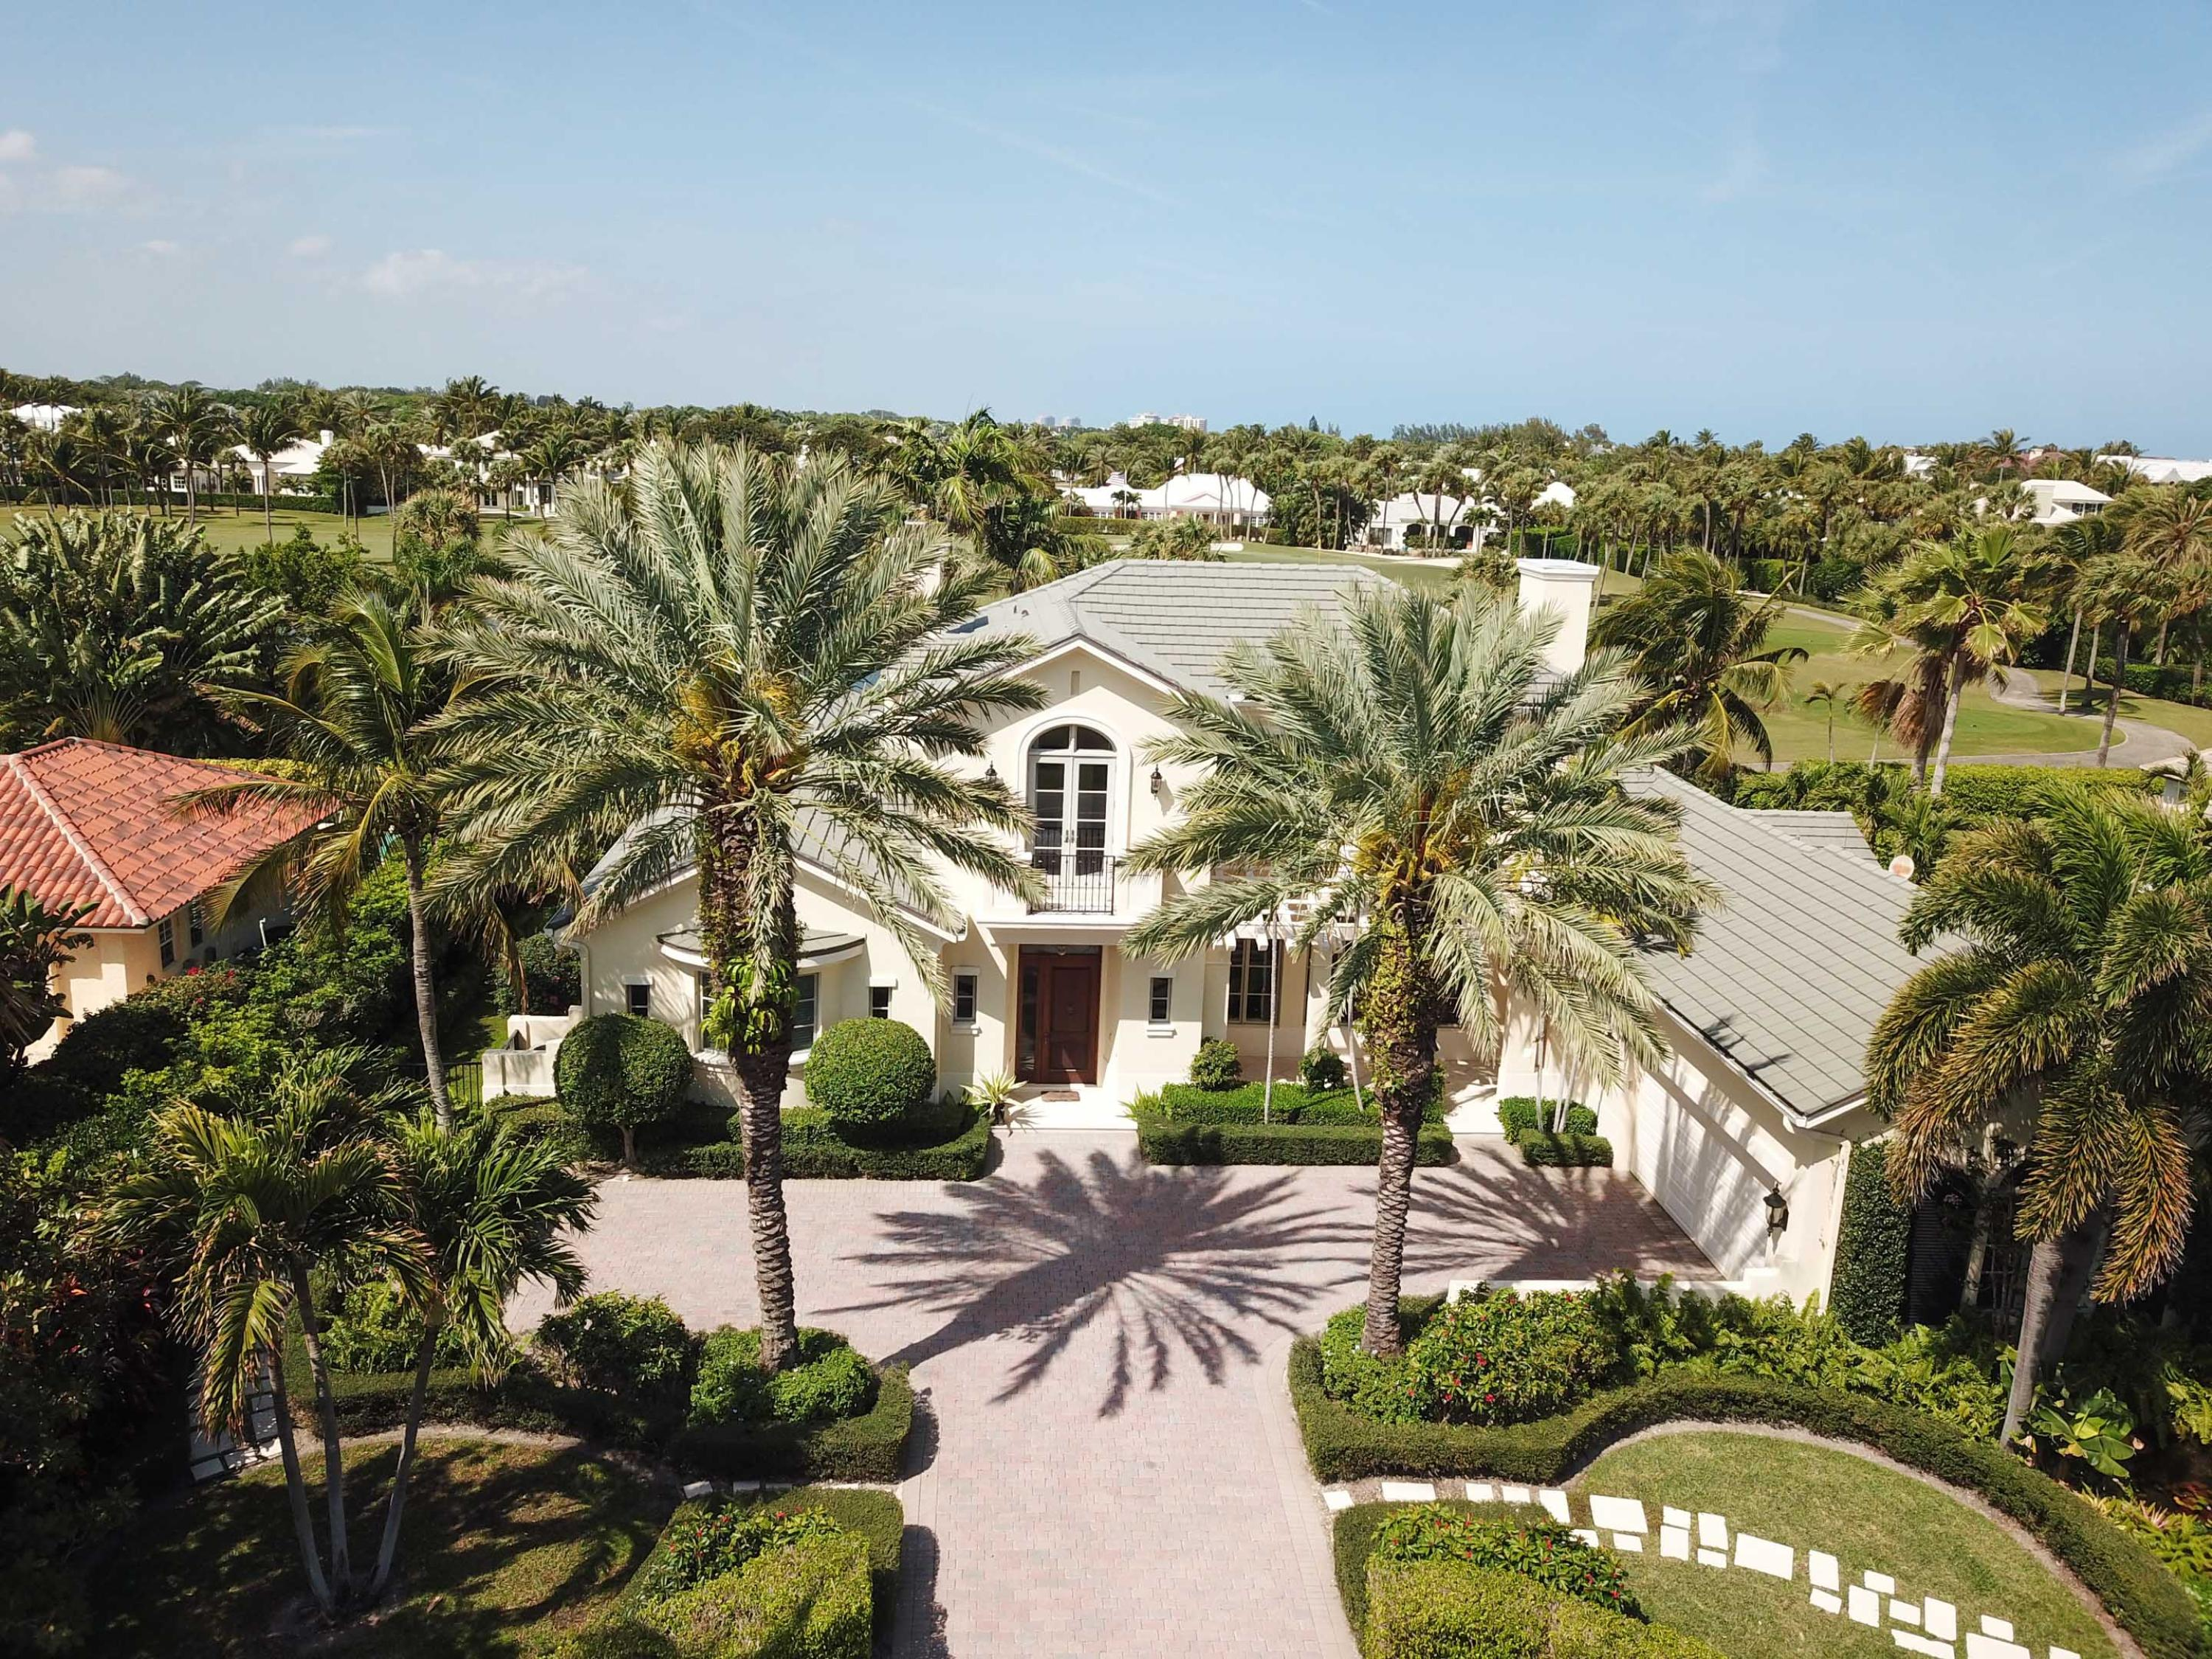 817 Lake House Drive, North Palm Beach, Florida 33408, 5 Bedrooms Bedrooms, ,5.1 BathroomsBathrooms,A,Single family,Lake House,RX-10609541